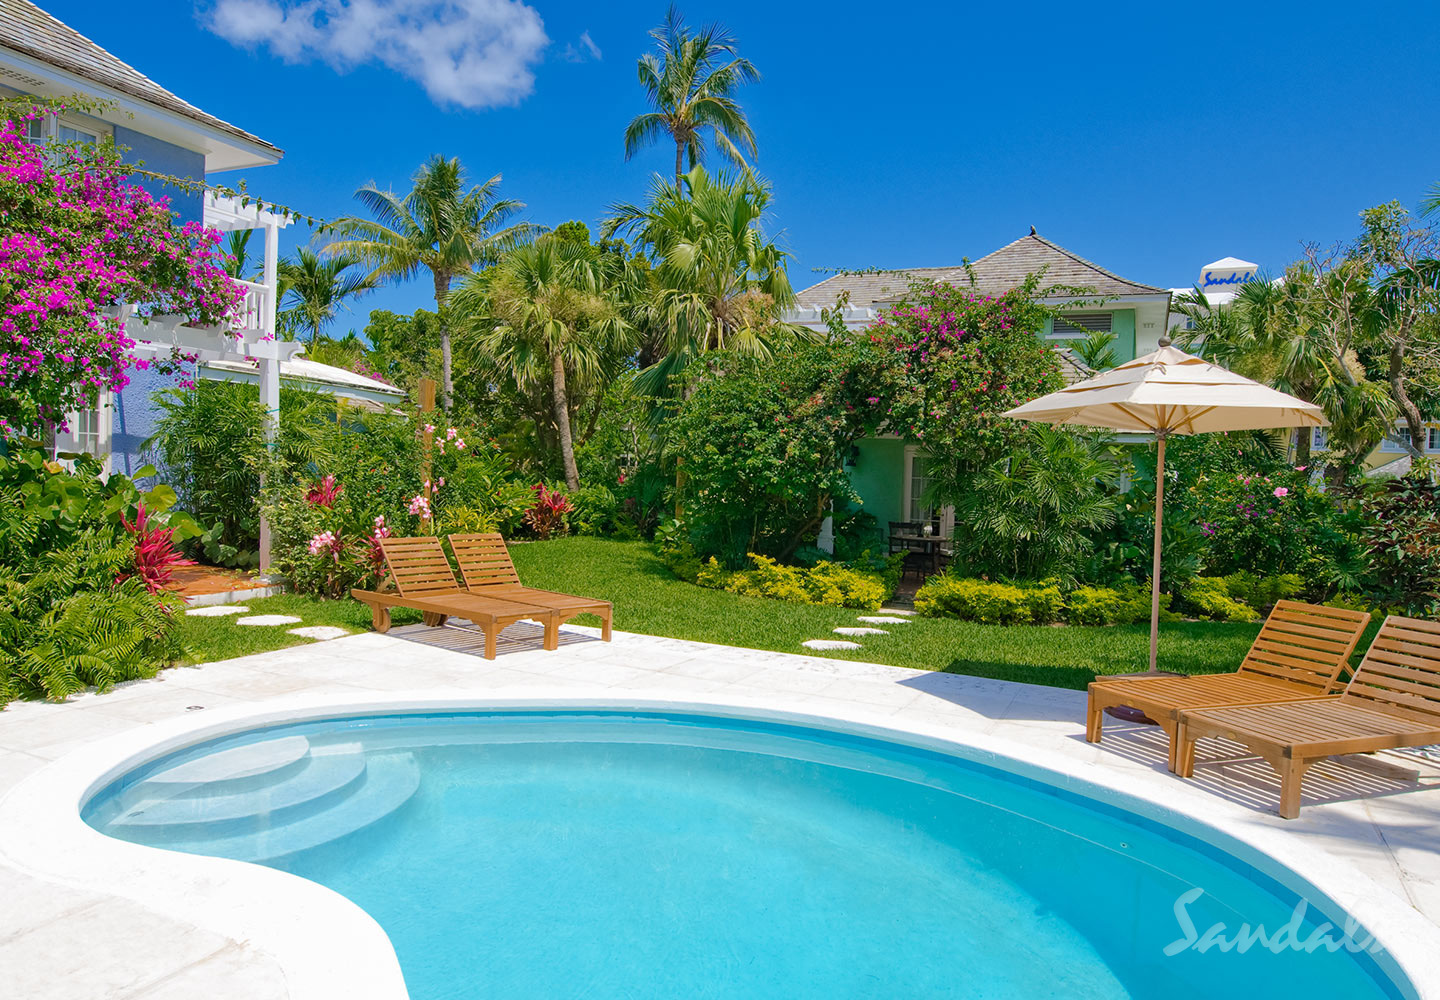 Travel Agency All-Inclusive Resort Sandals Royal Bahamian 023